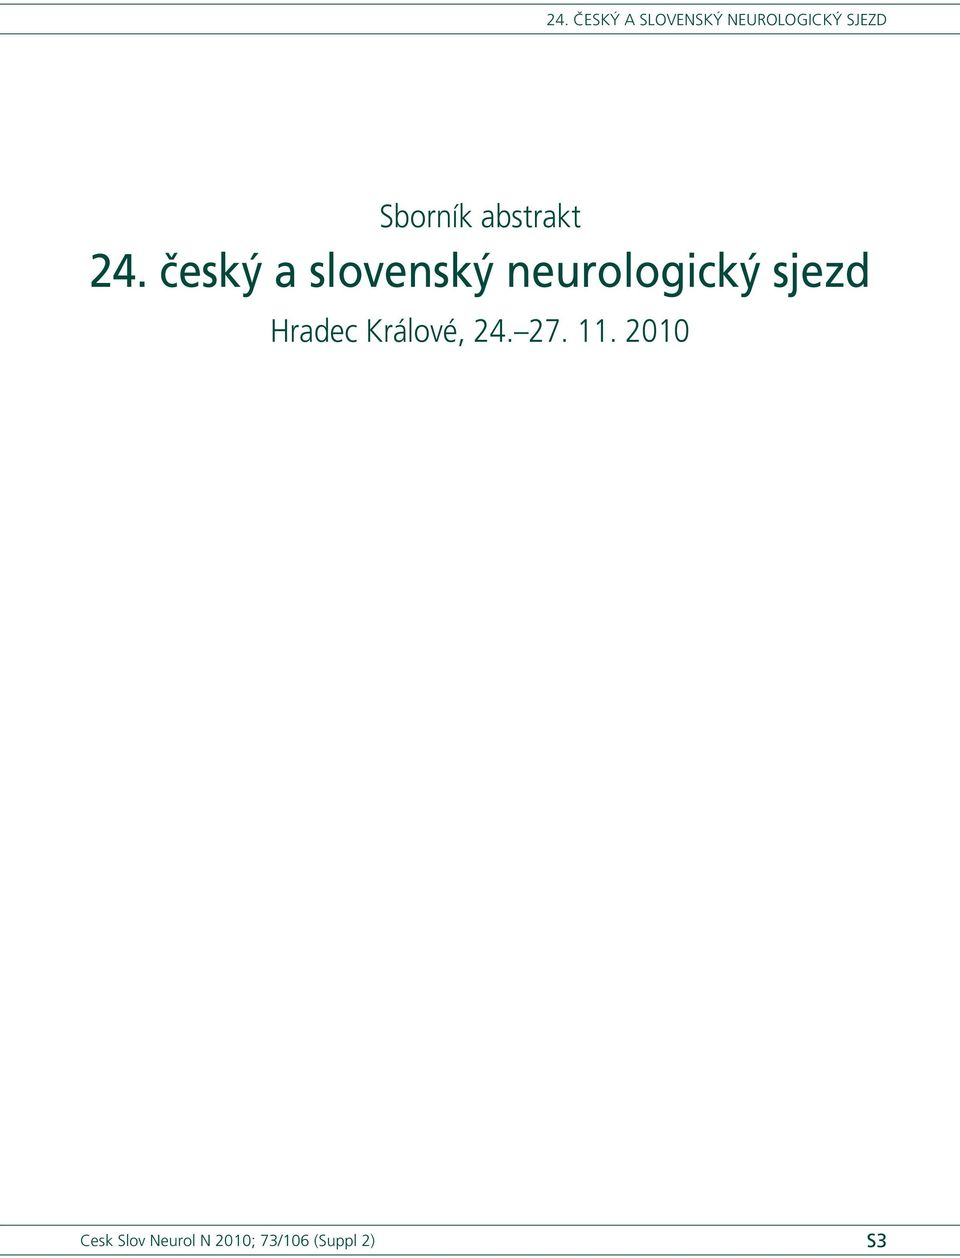 . 00 Cesk Slov Neurol N 00; 73/06 (Suppl